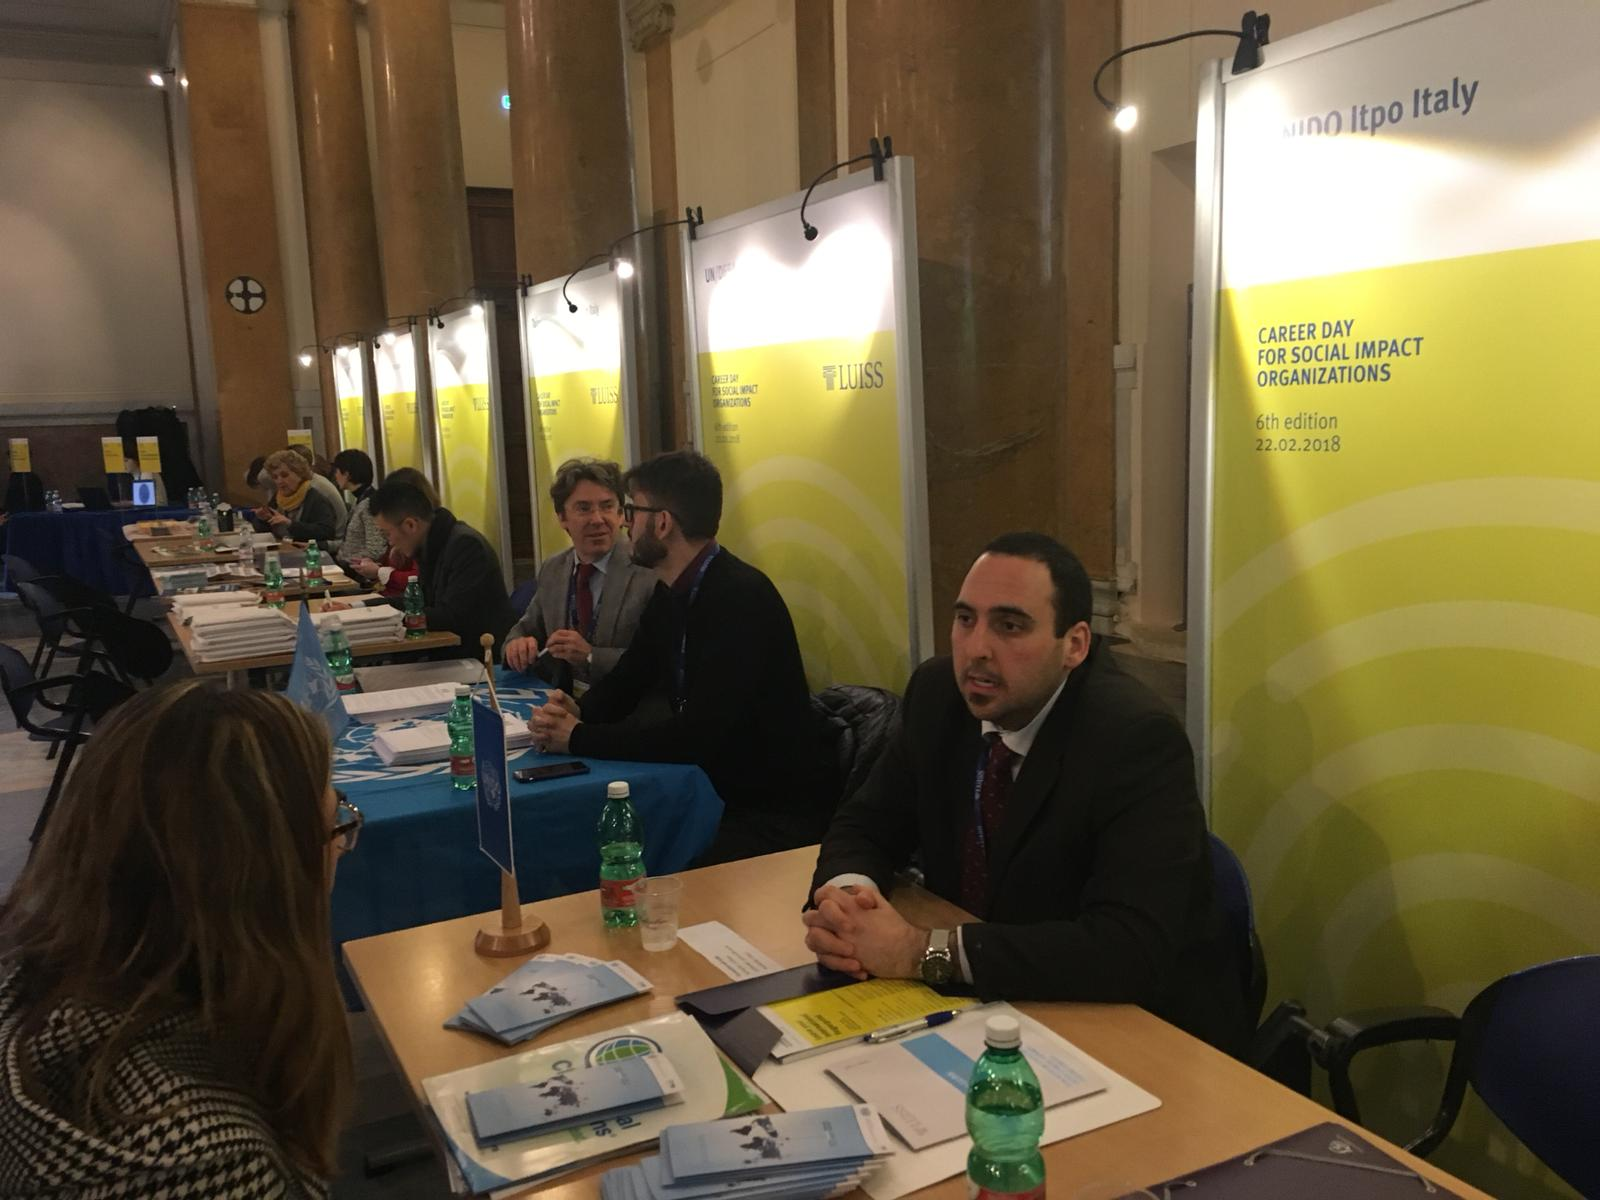 UNIDO ITPO Italy ha partecipato al LUISS Career Day for Social Impact Organizations